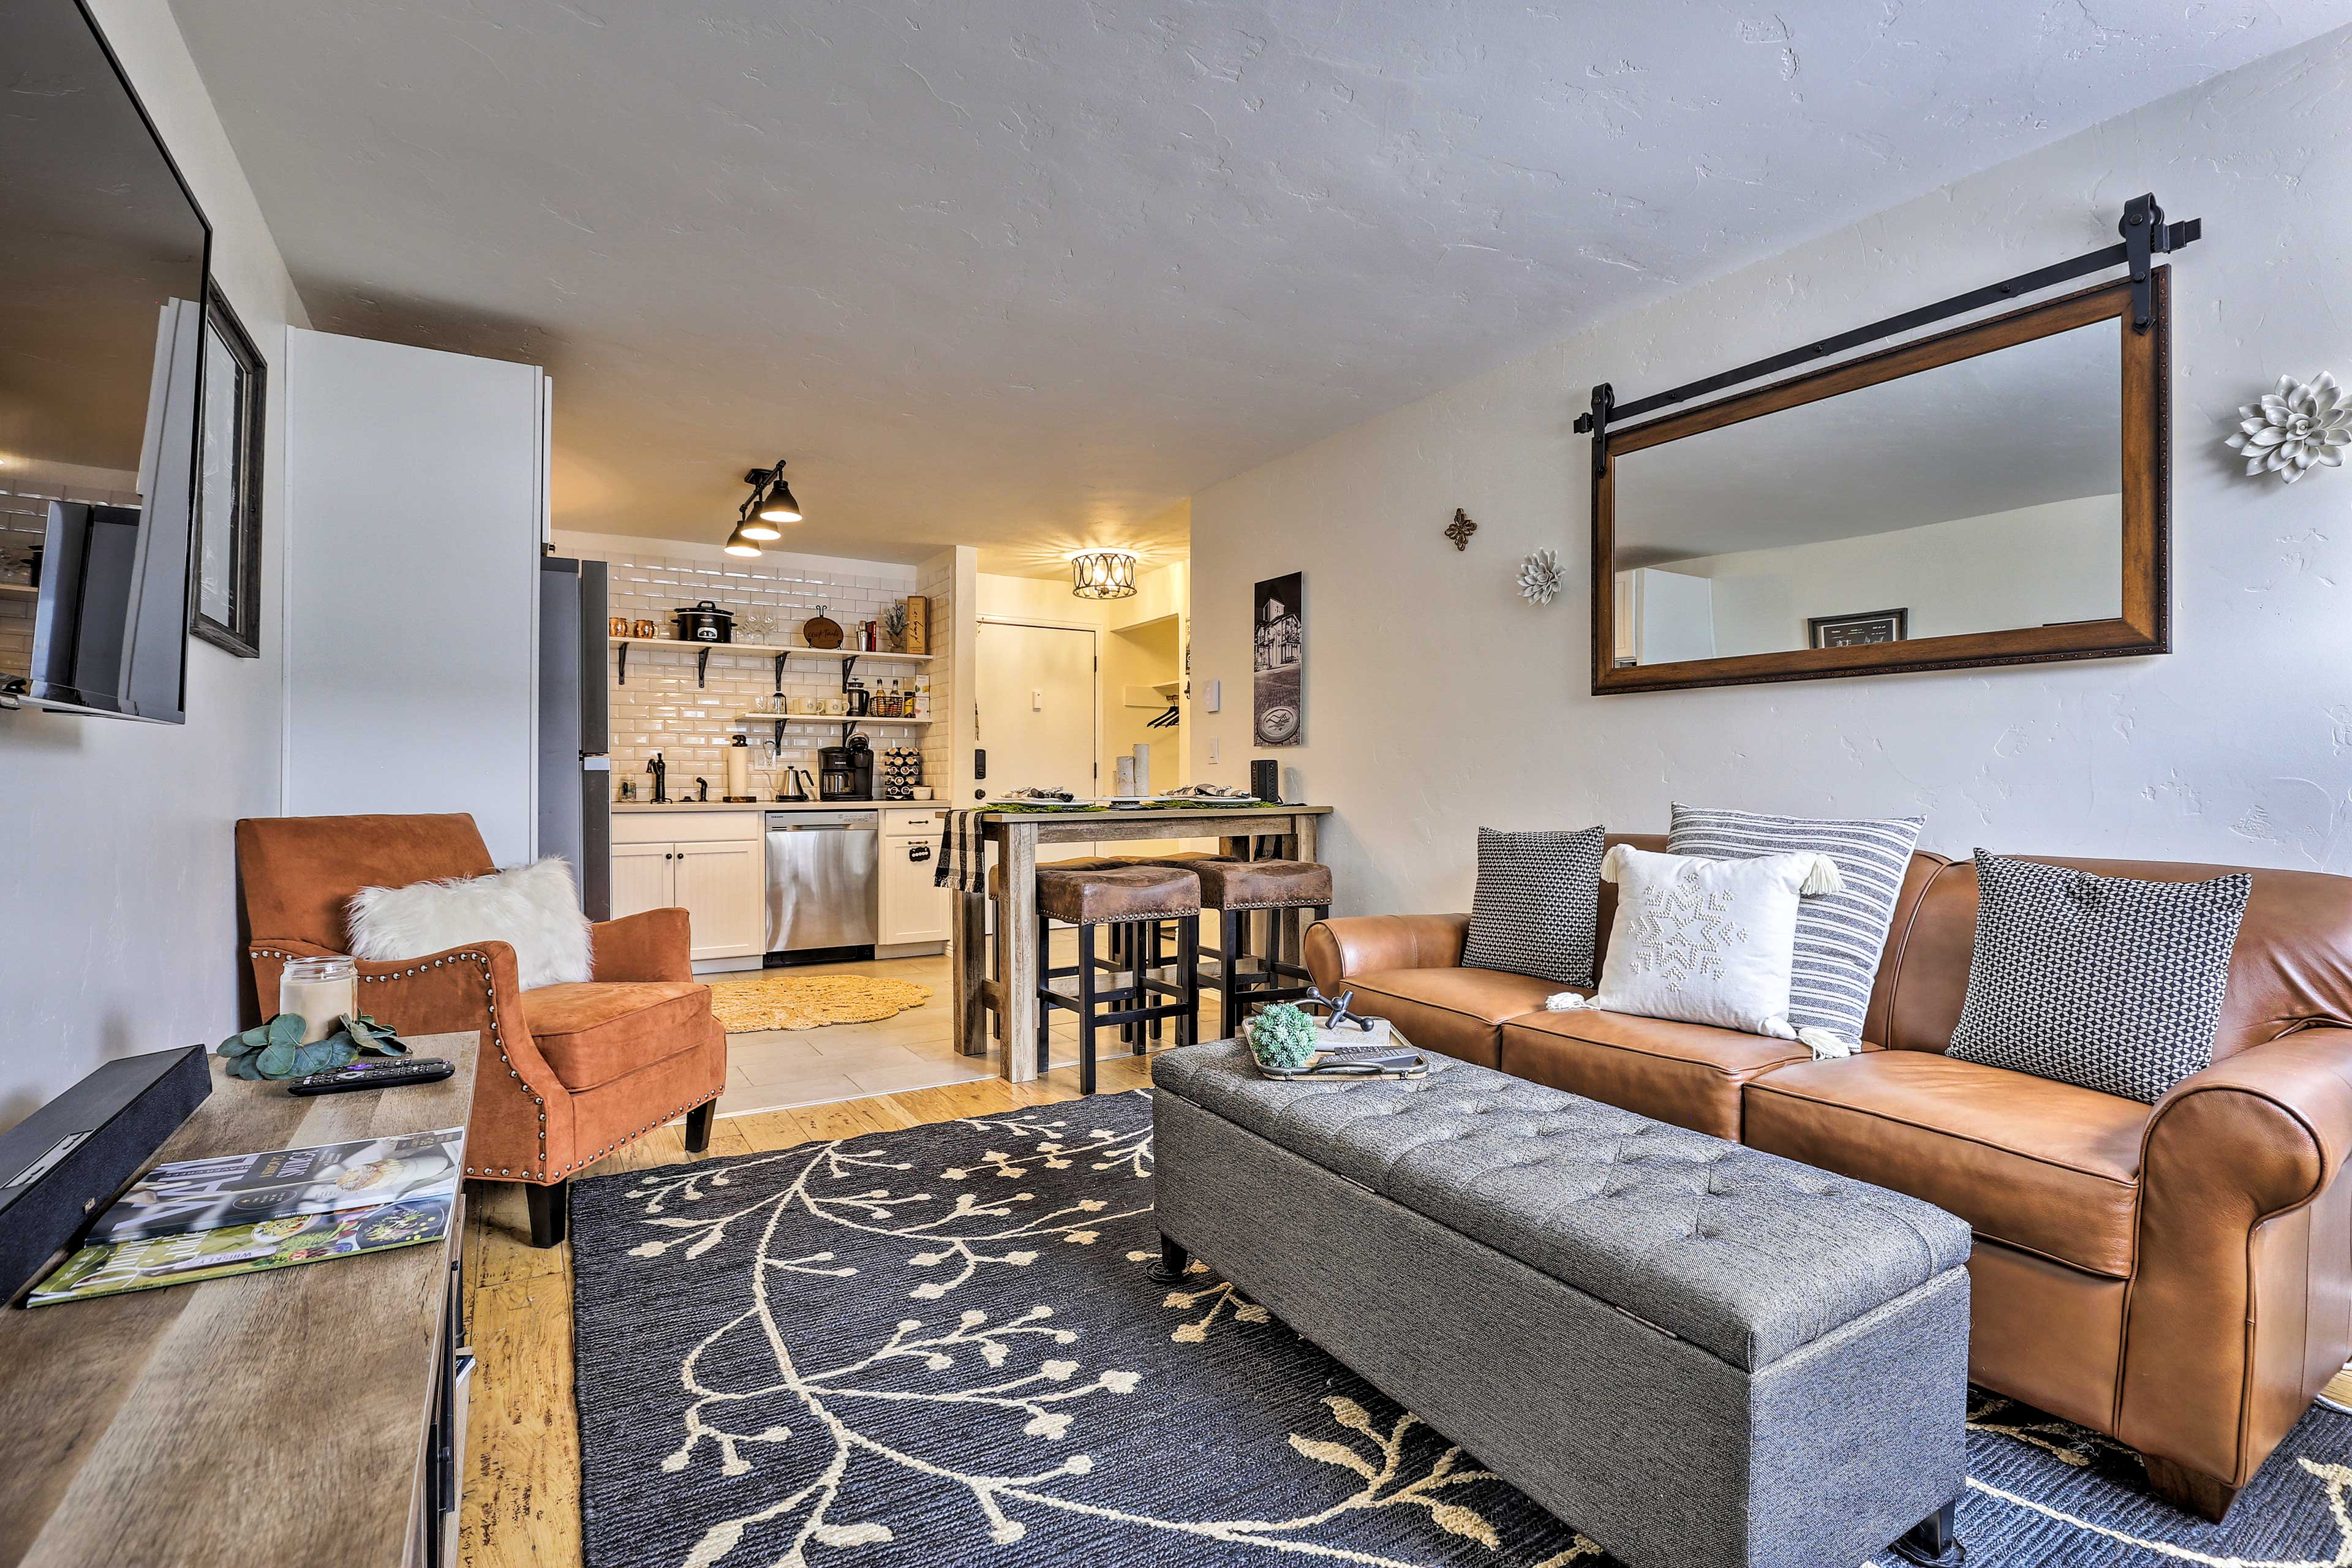 This 1-bedroom, 1-bath condo is located in the stunning town of Avon!